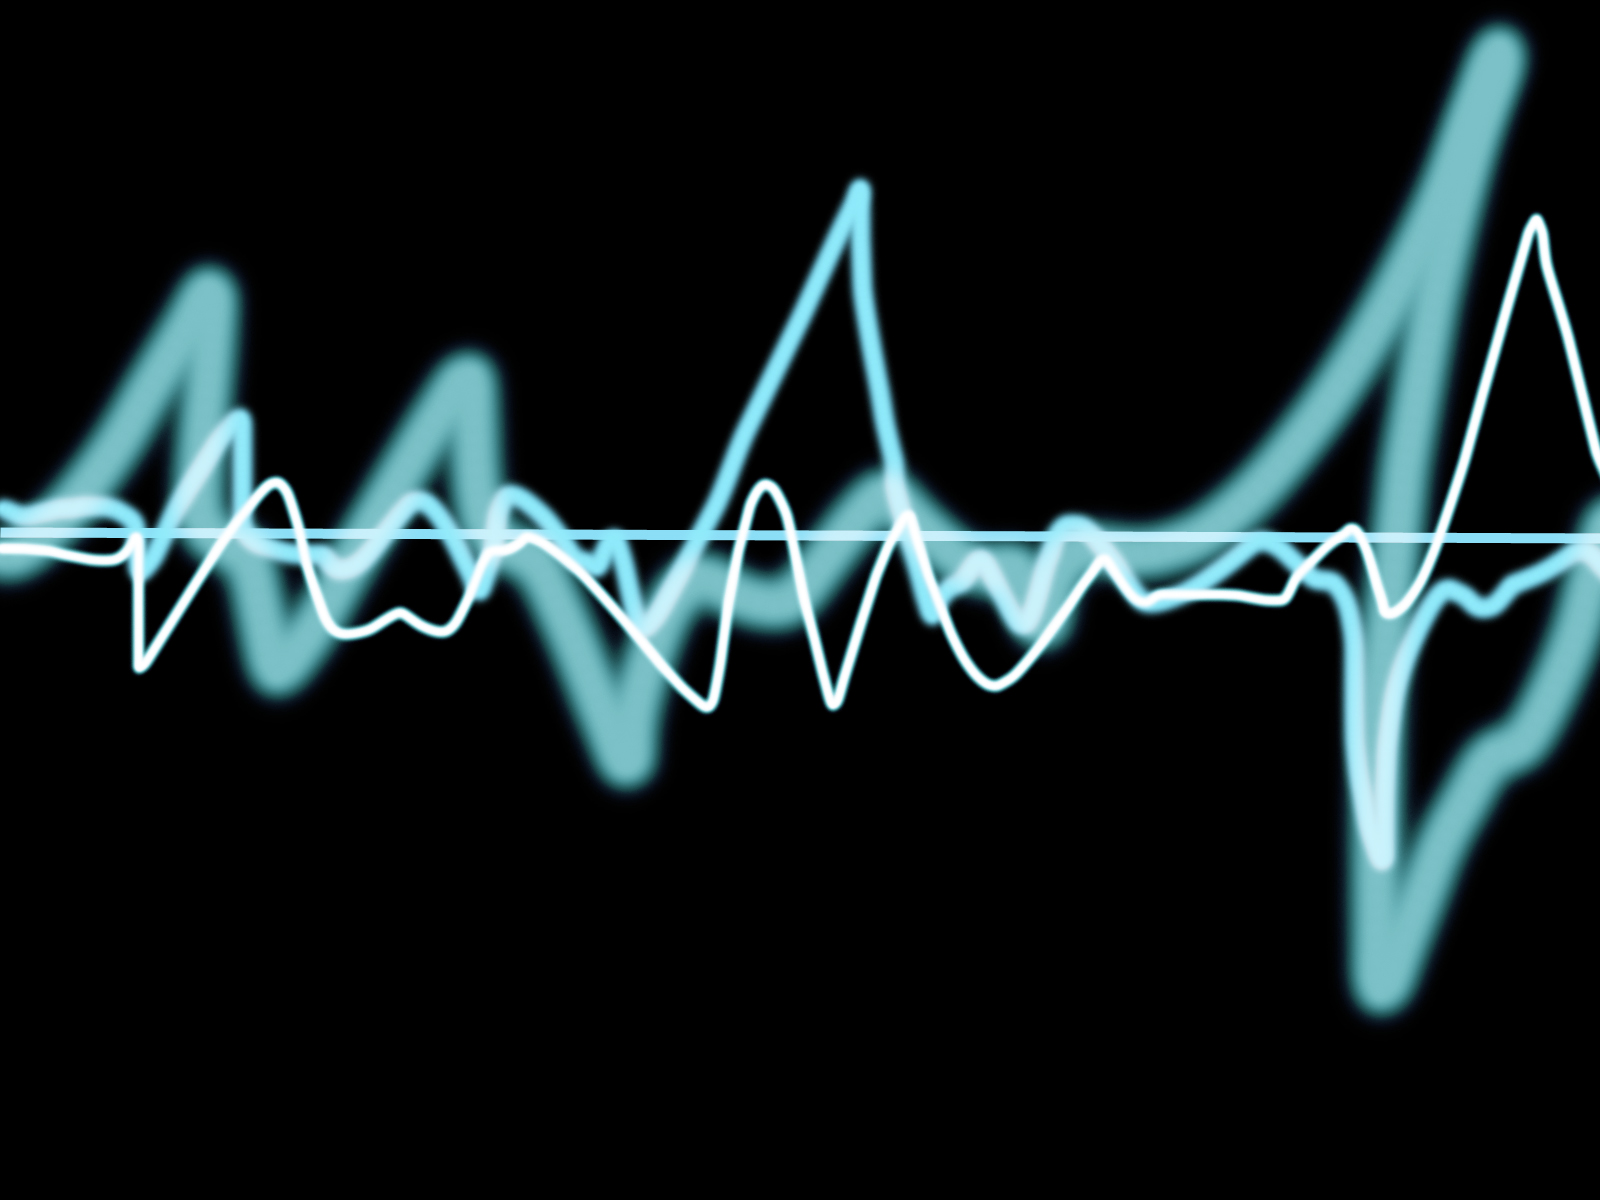 sound waves essay Everything you should know about sound march 9, 2016 by tim urban so a sound wave might have a high pressure component of 10001 atmospheres and a low.